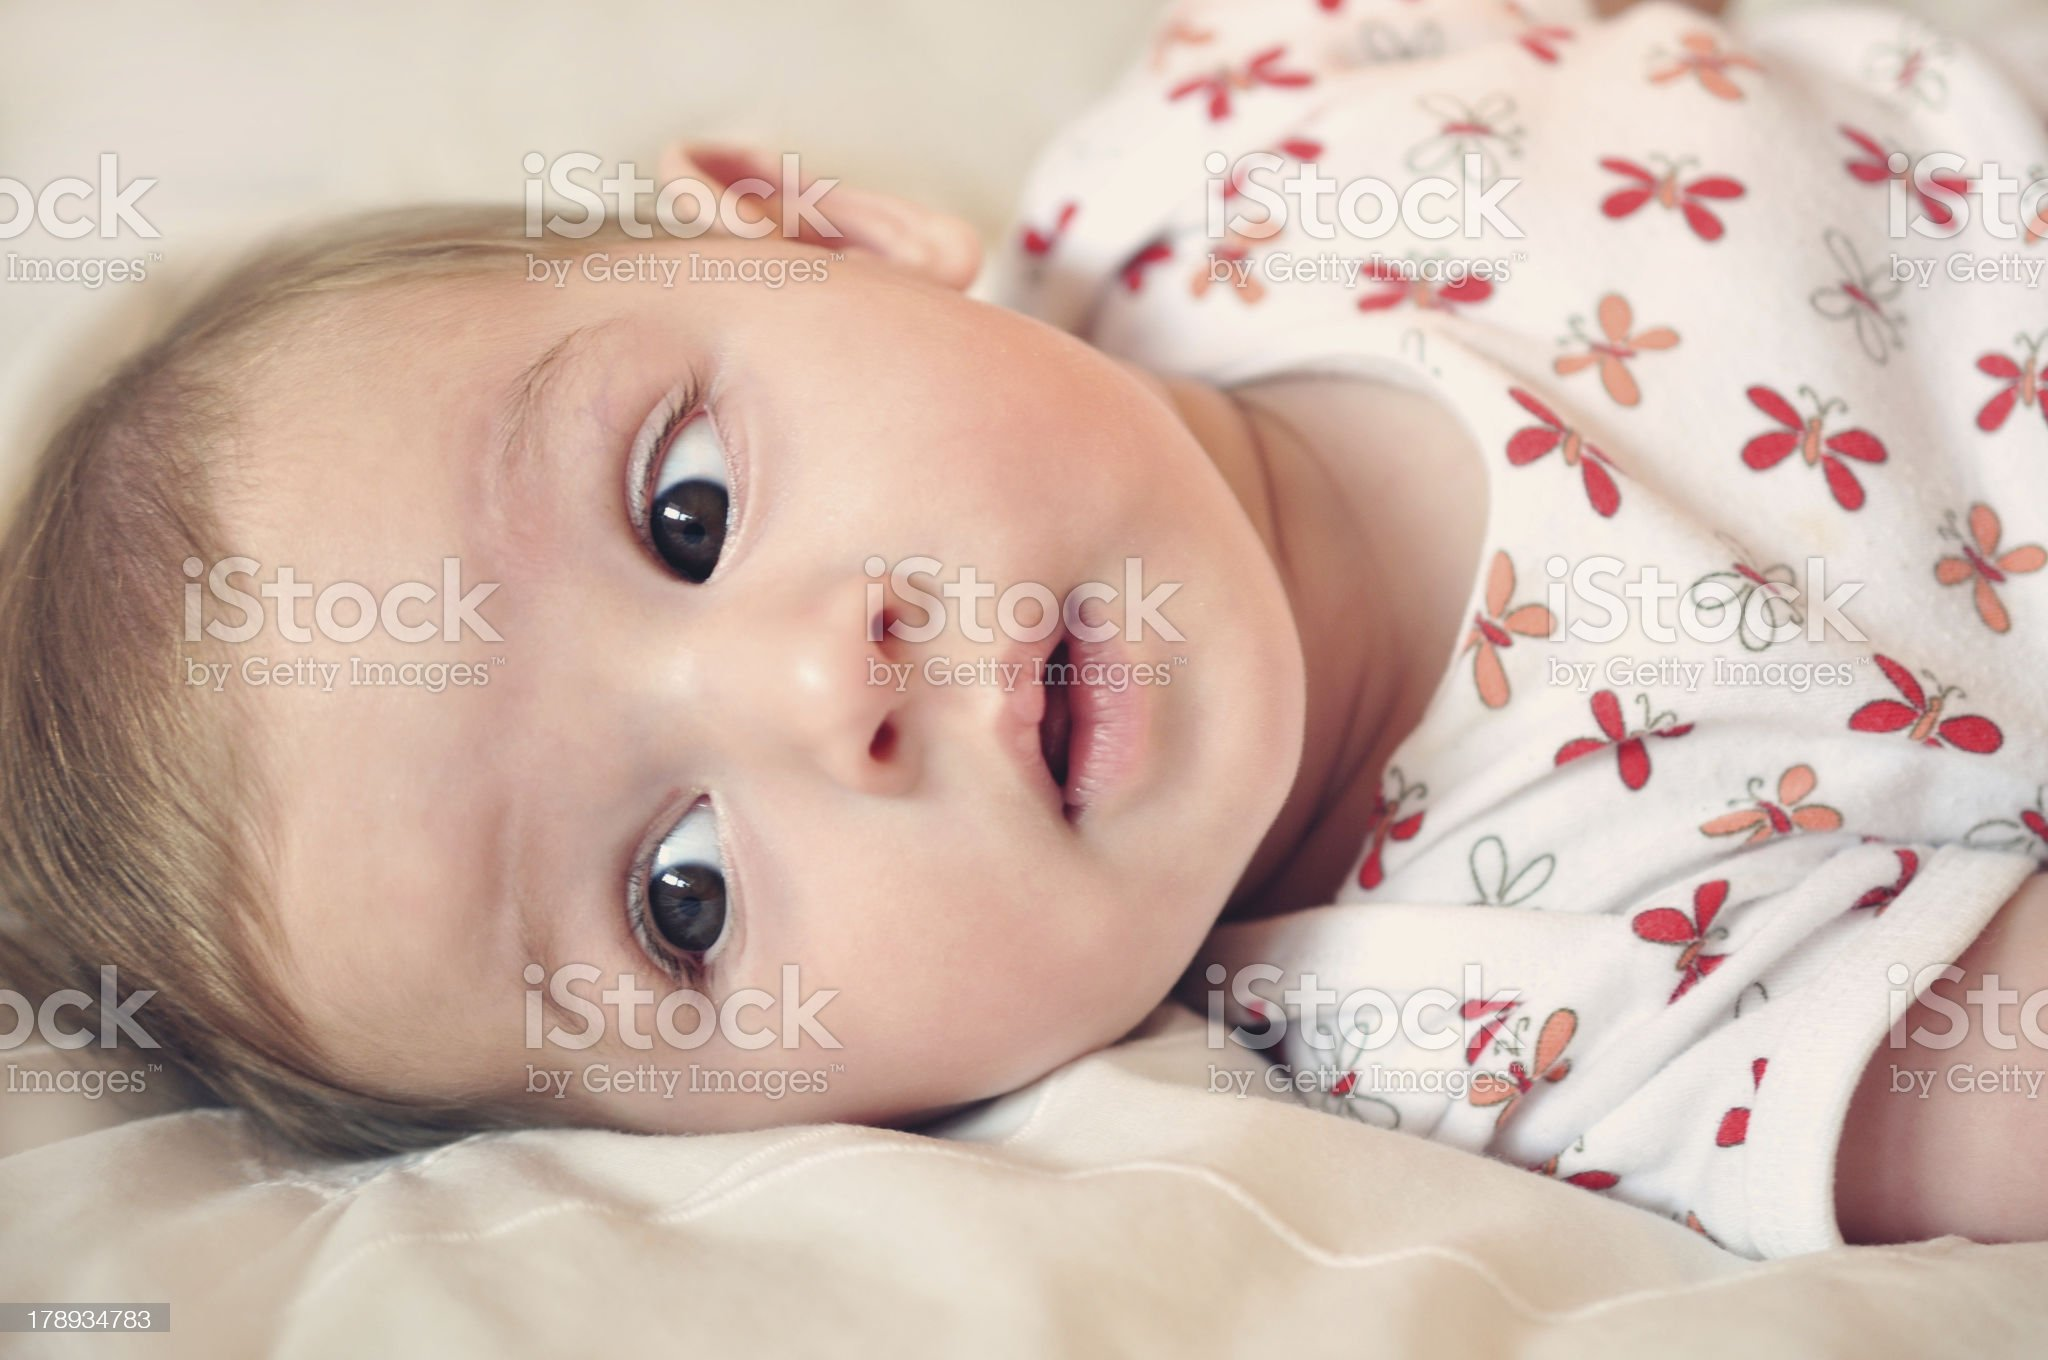 Baby Girl Looking Curious and Lying On a Bed royalty-free stock photo